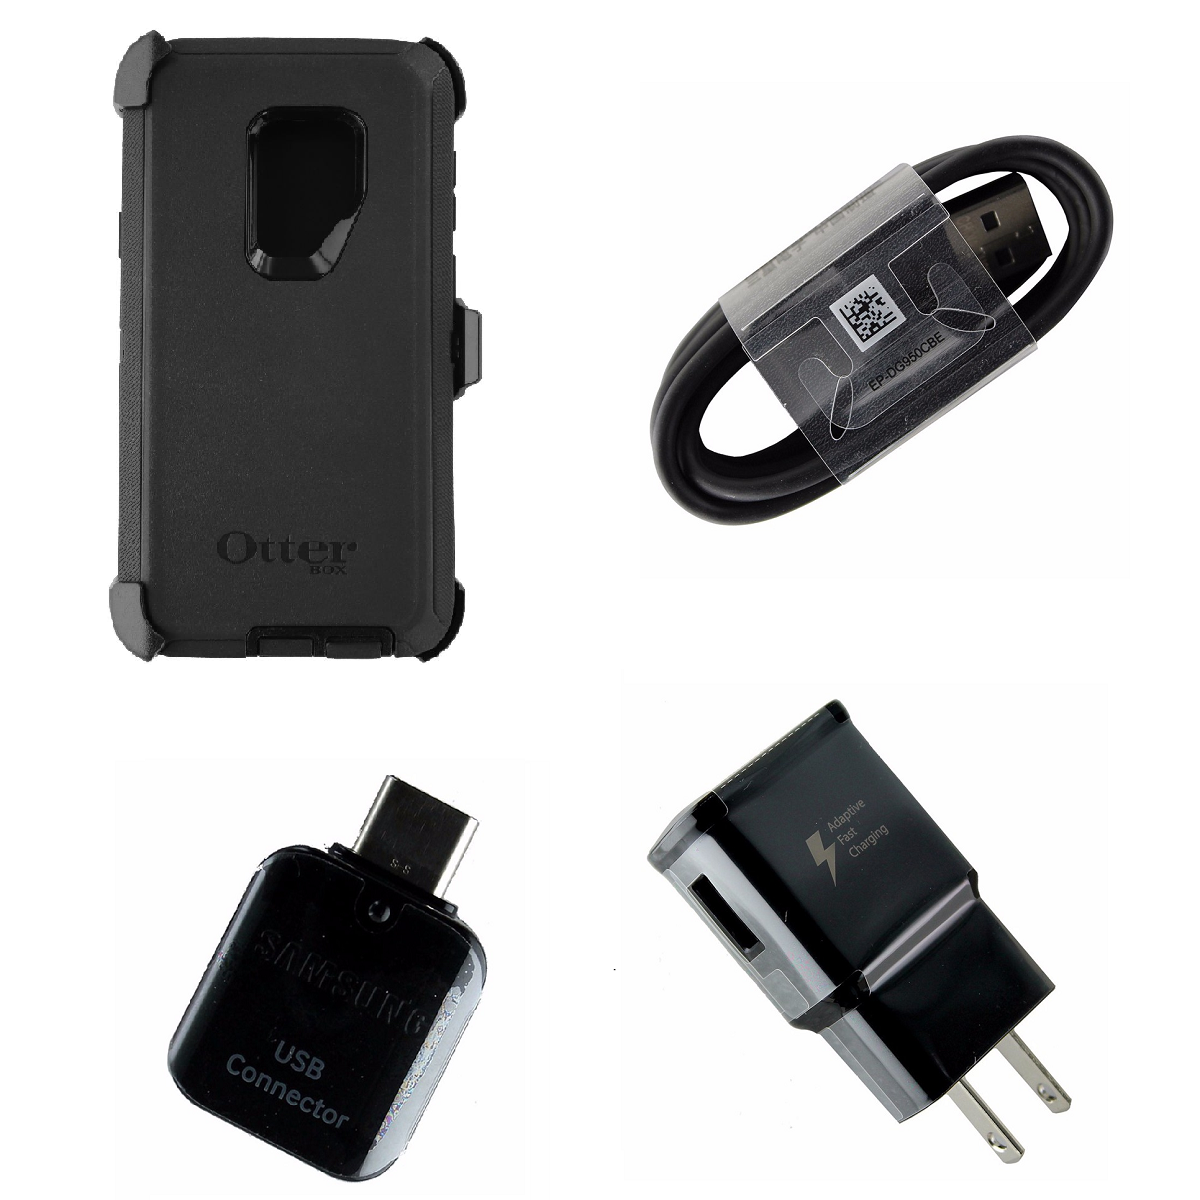 OEM Adapter + Charger KIT w/ OtterBox Black Defender Case for Samsung Galaxy S9+